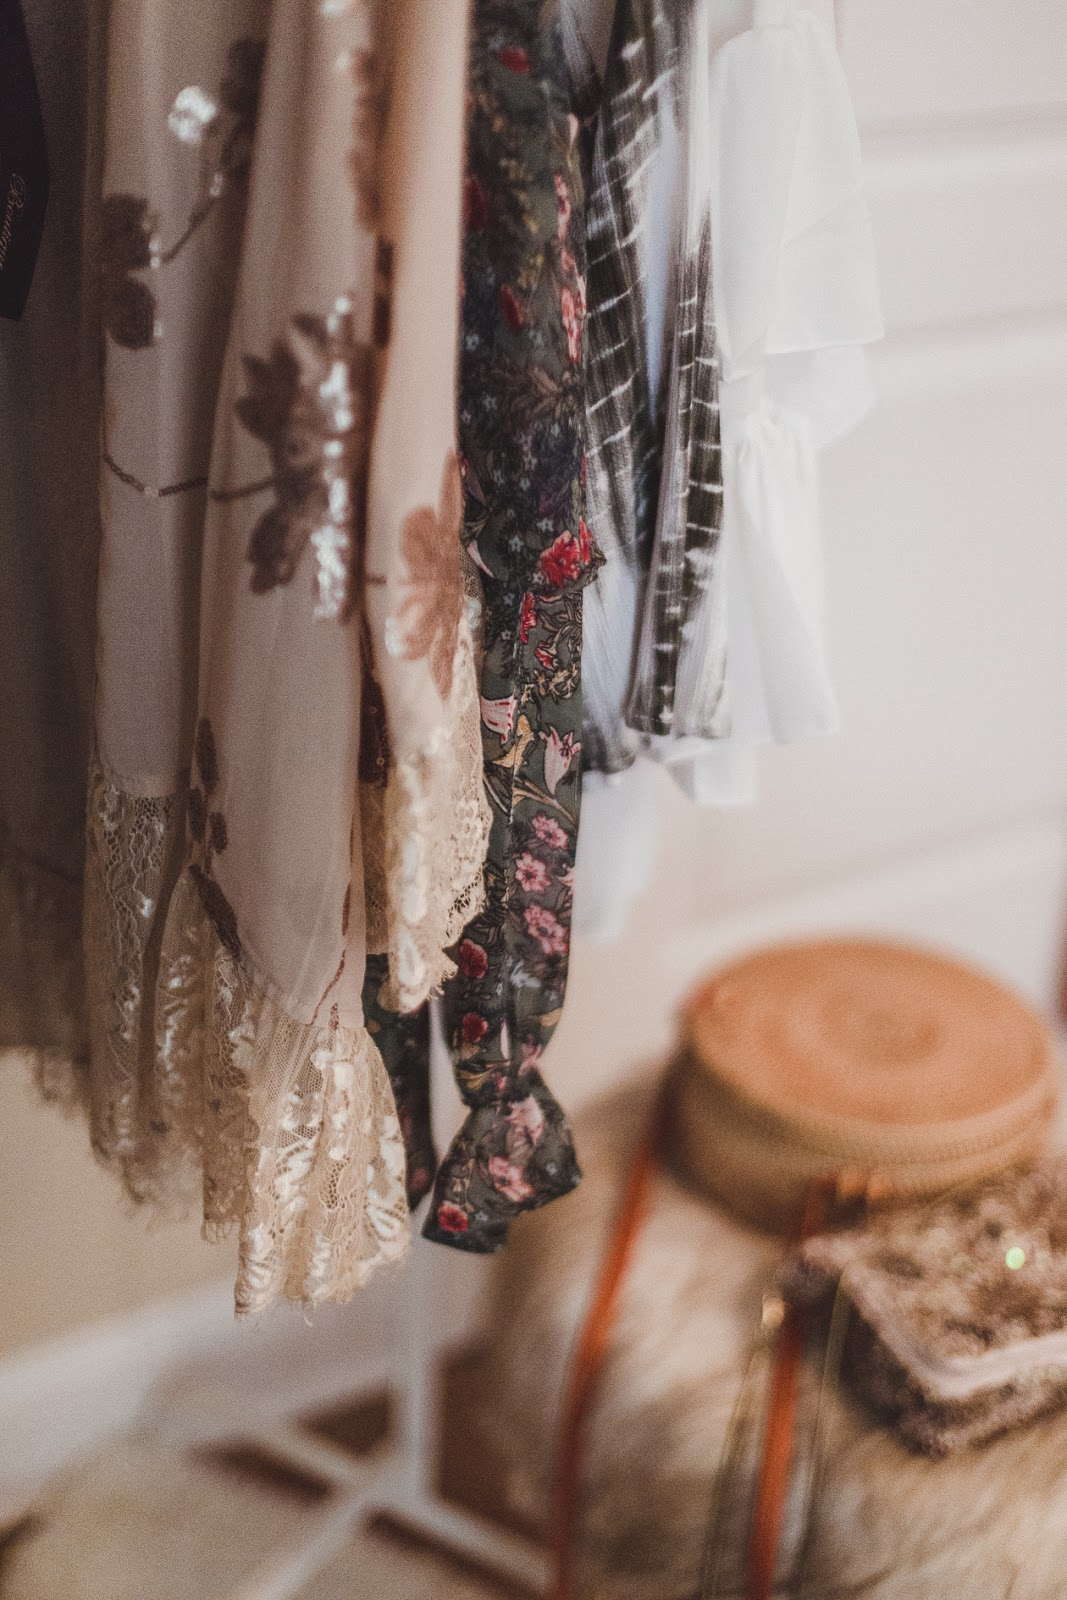 free people embellished slip dress, ruffle blouse, peasant blouse, free people outfit, spring treneds, xo samantha brooke, life and messy hair